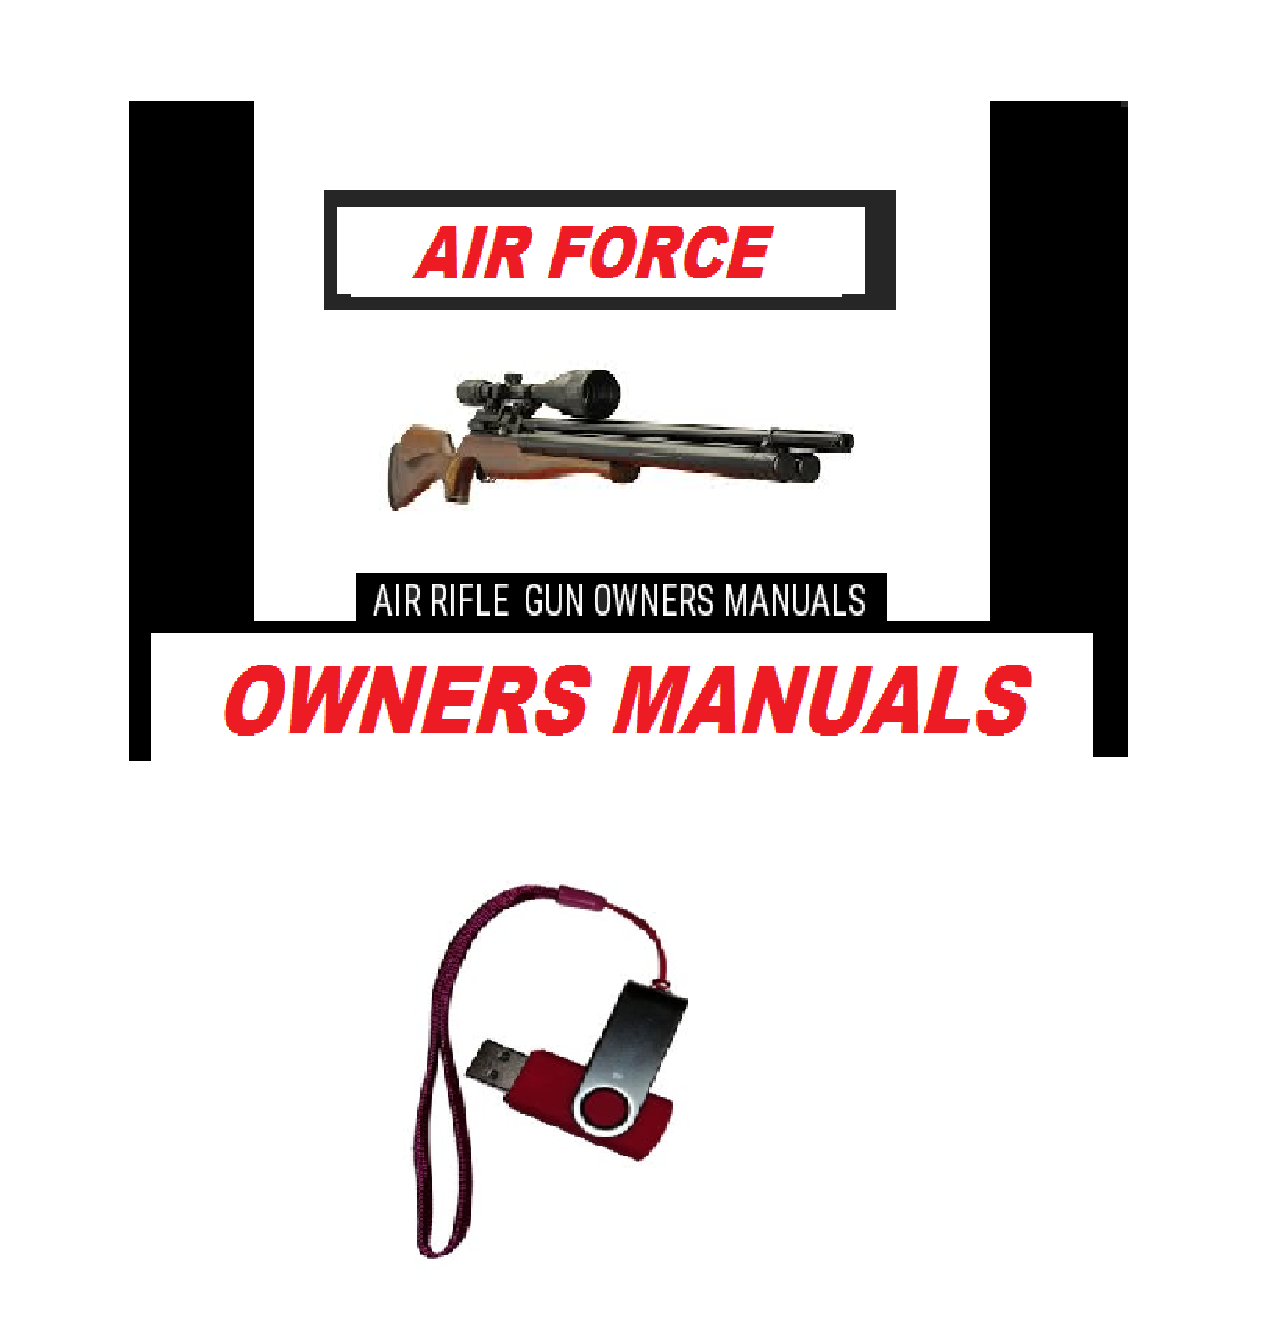 Air Force Airgun Air Rifle Gun Pistol Owners Manuals Firearms Weapons Complete Set USB